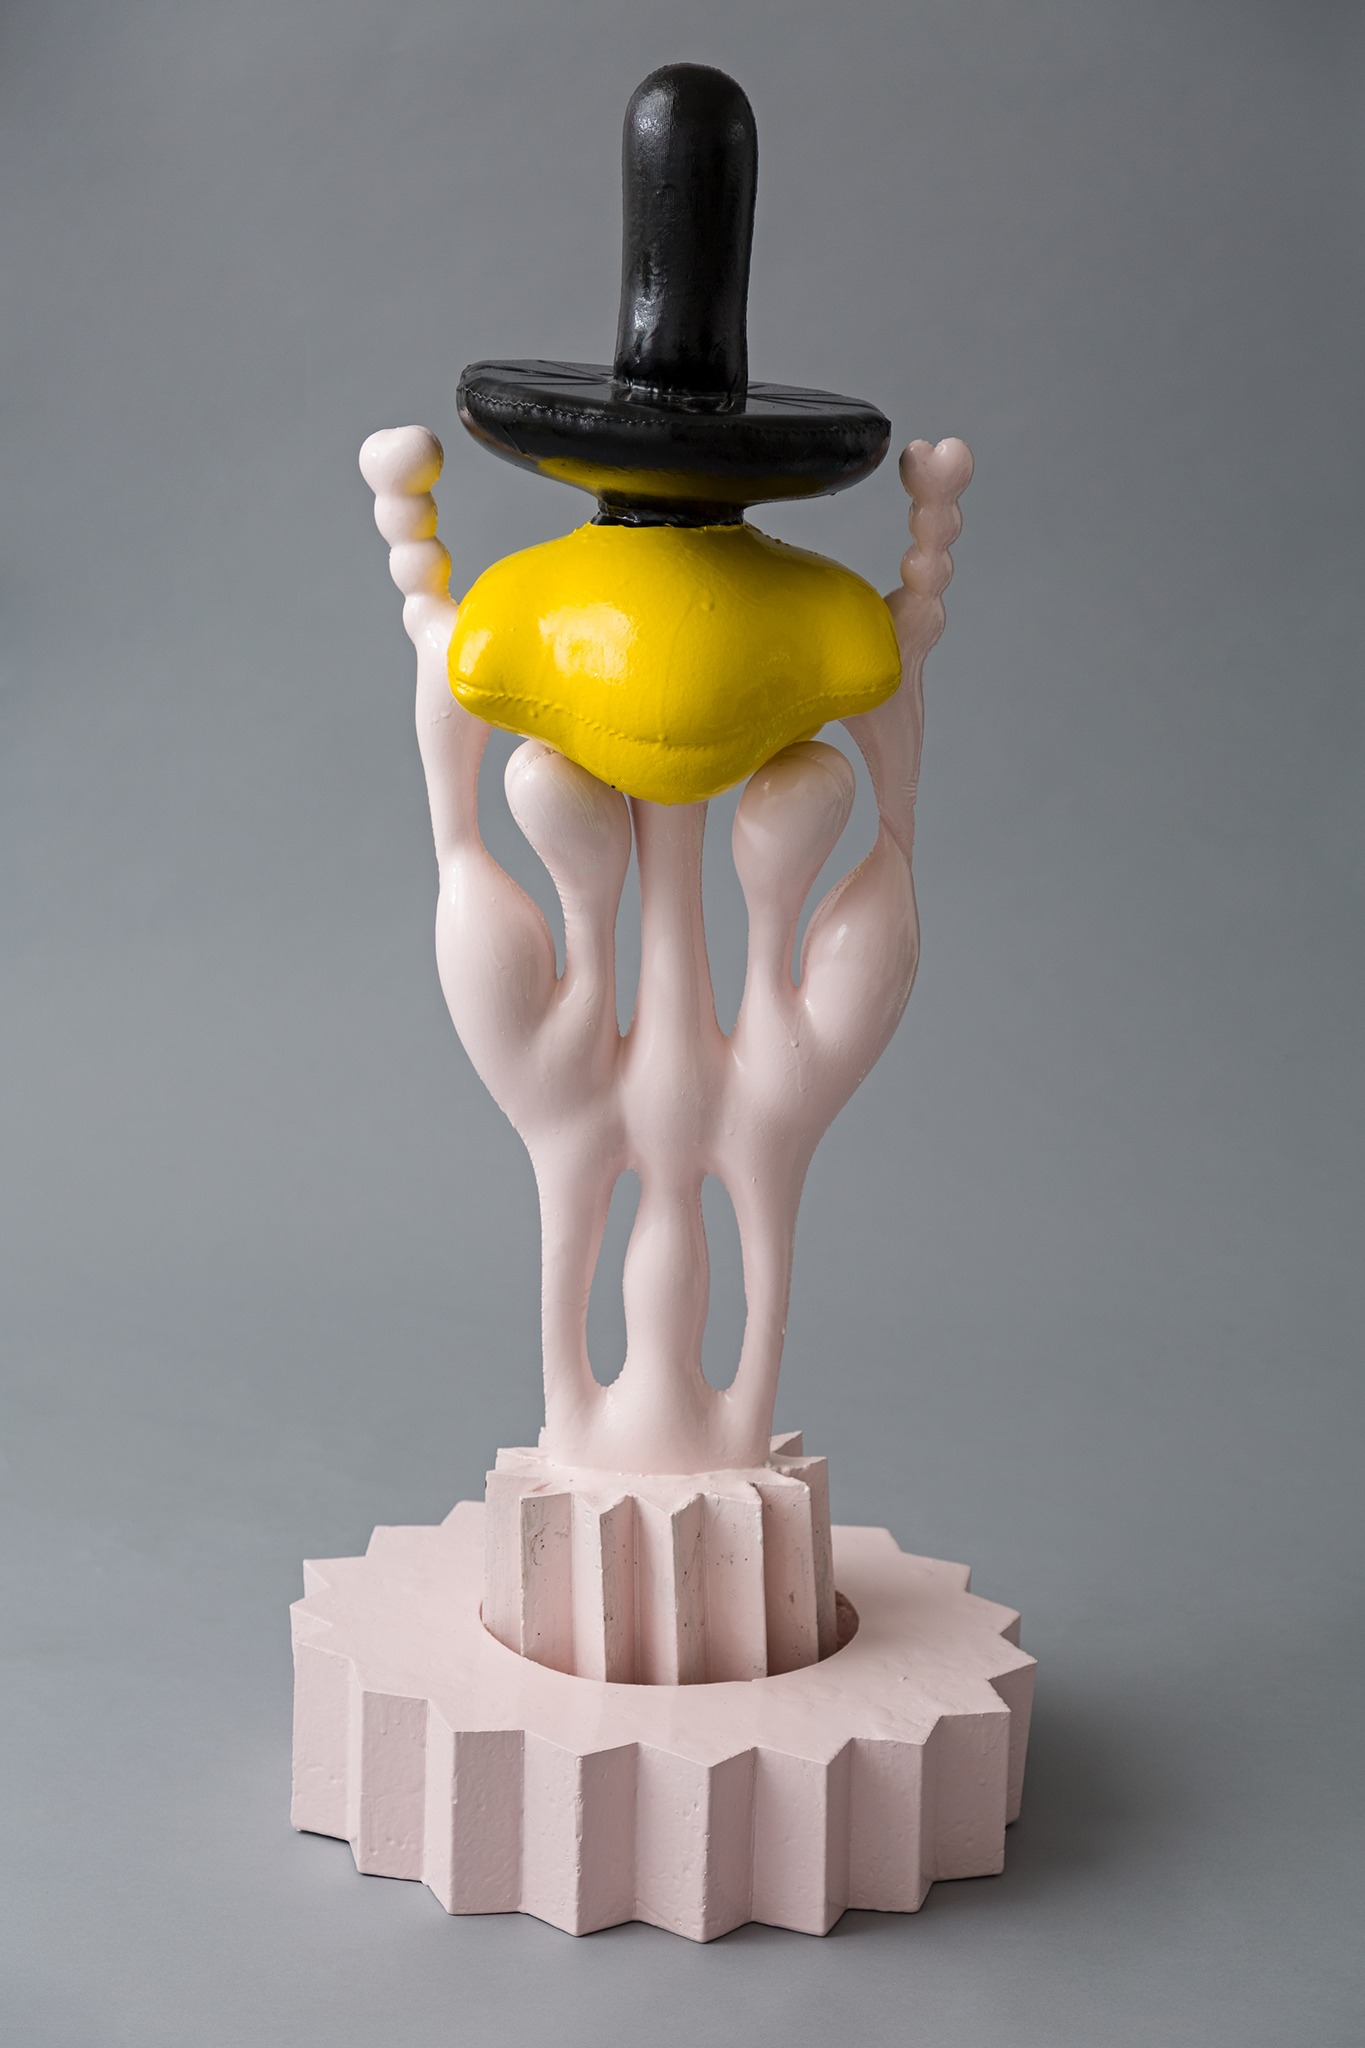 A sculpture by Mike Goodlett titled Untitled, dated 2020.